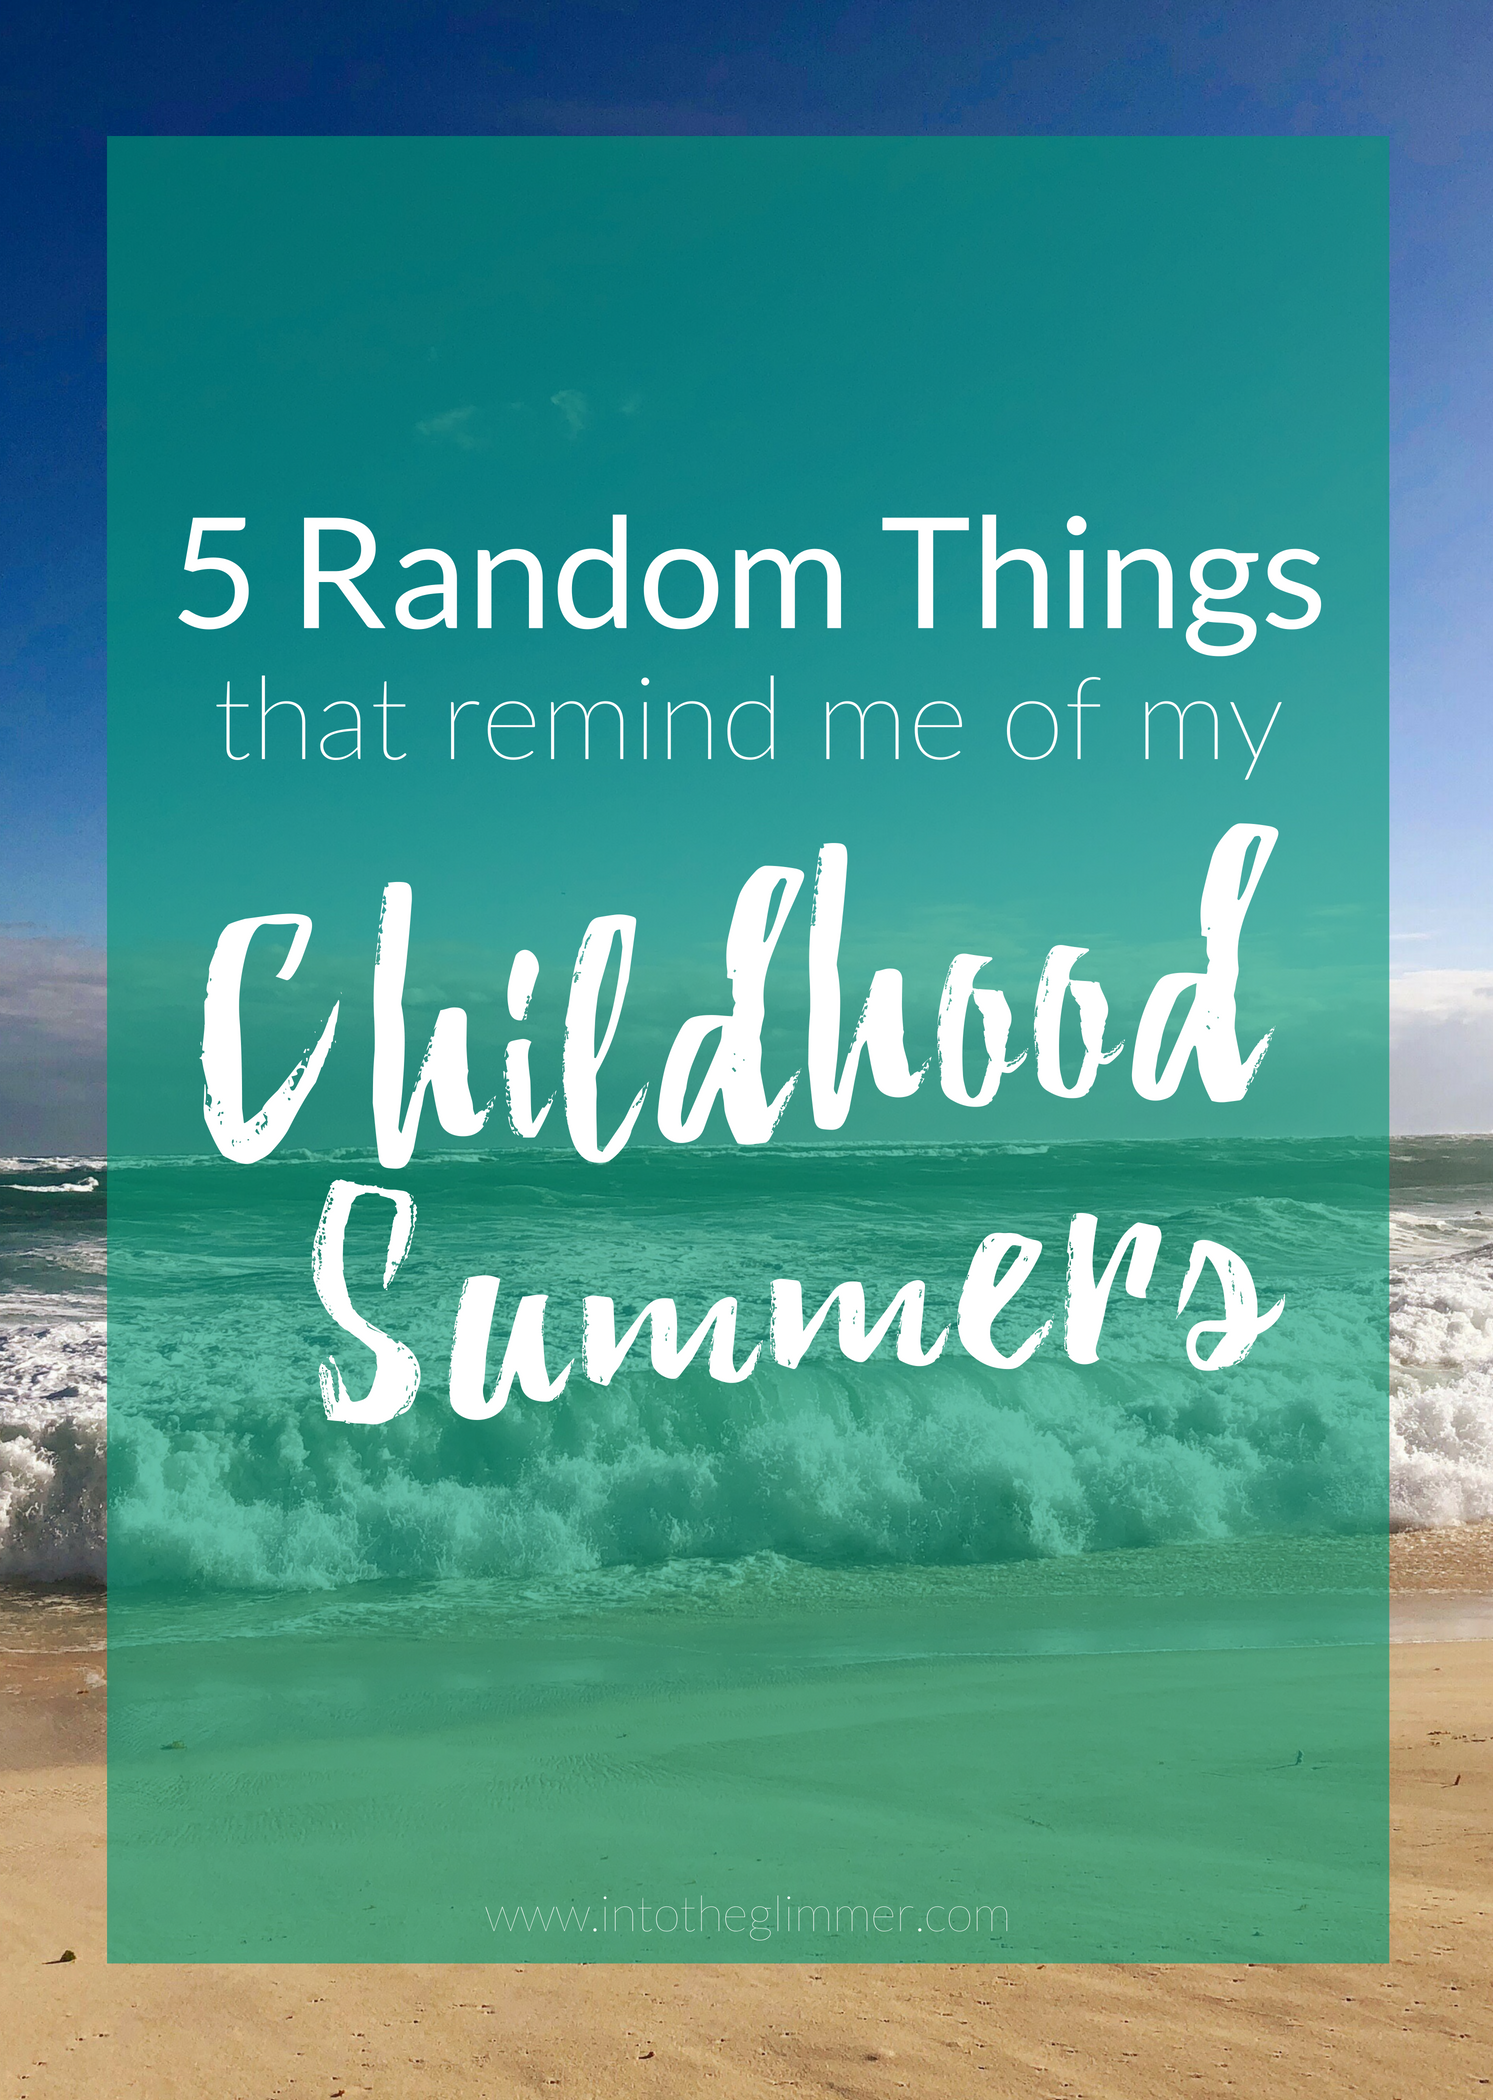 friday five - random things that remind me of childhood summers